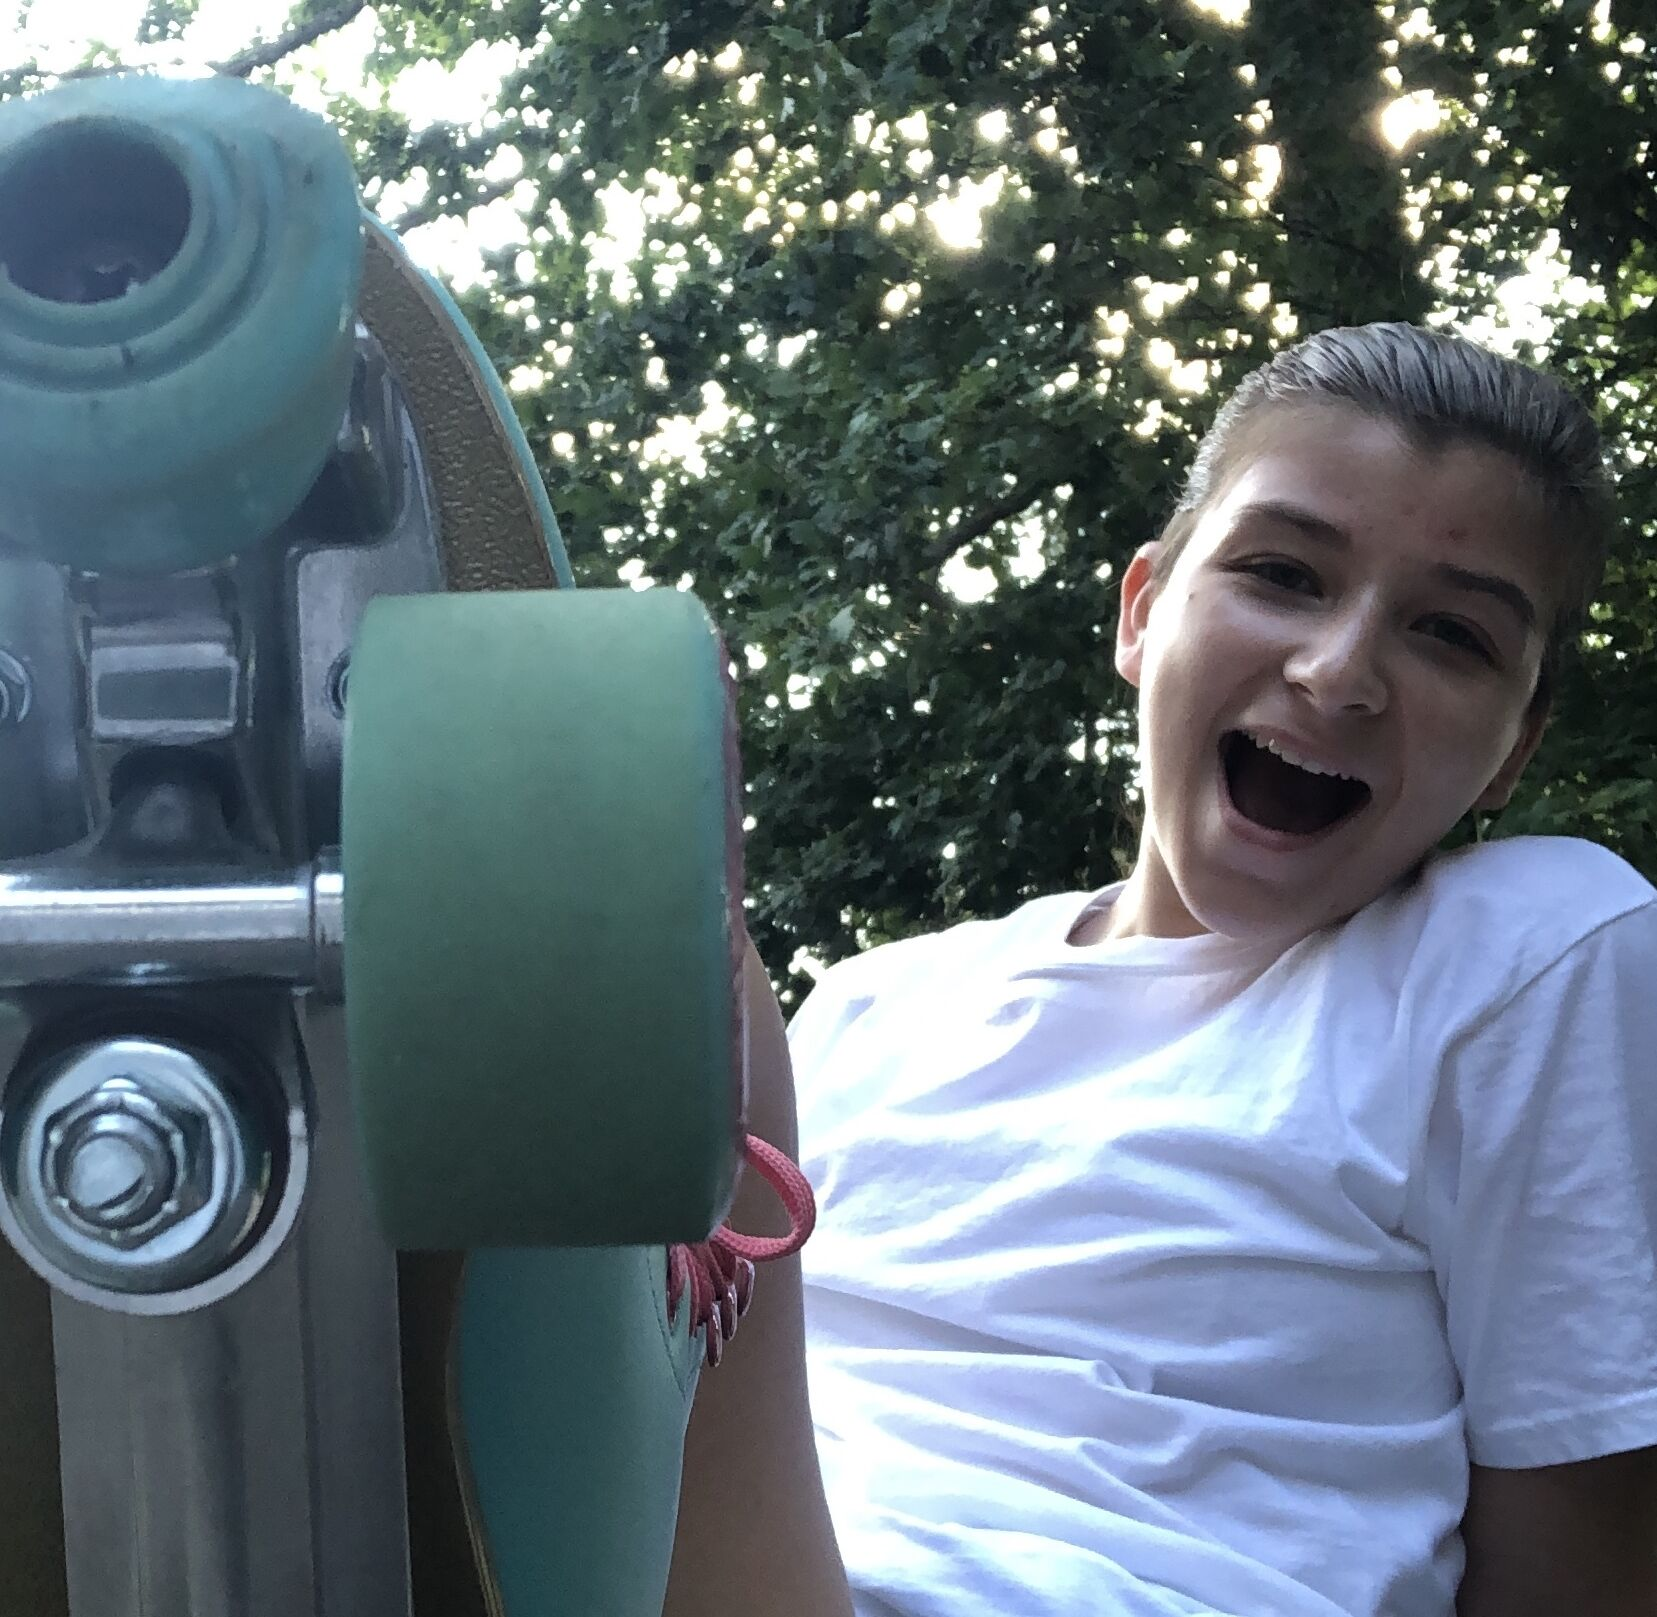 A photo of Gabby flipping a skateboard toward the camera and smiling.